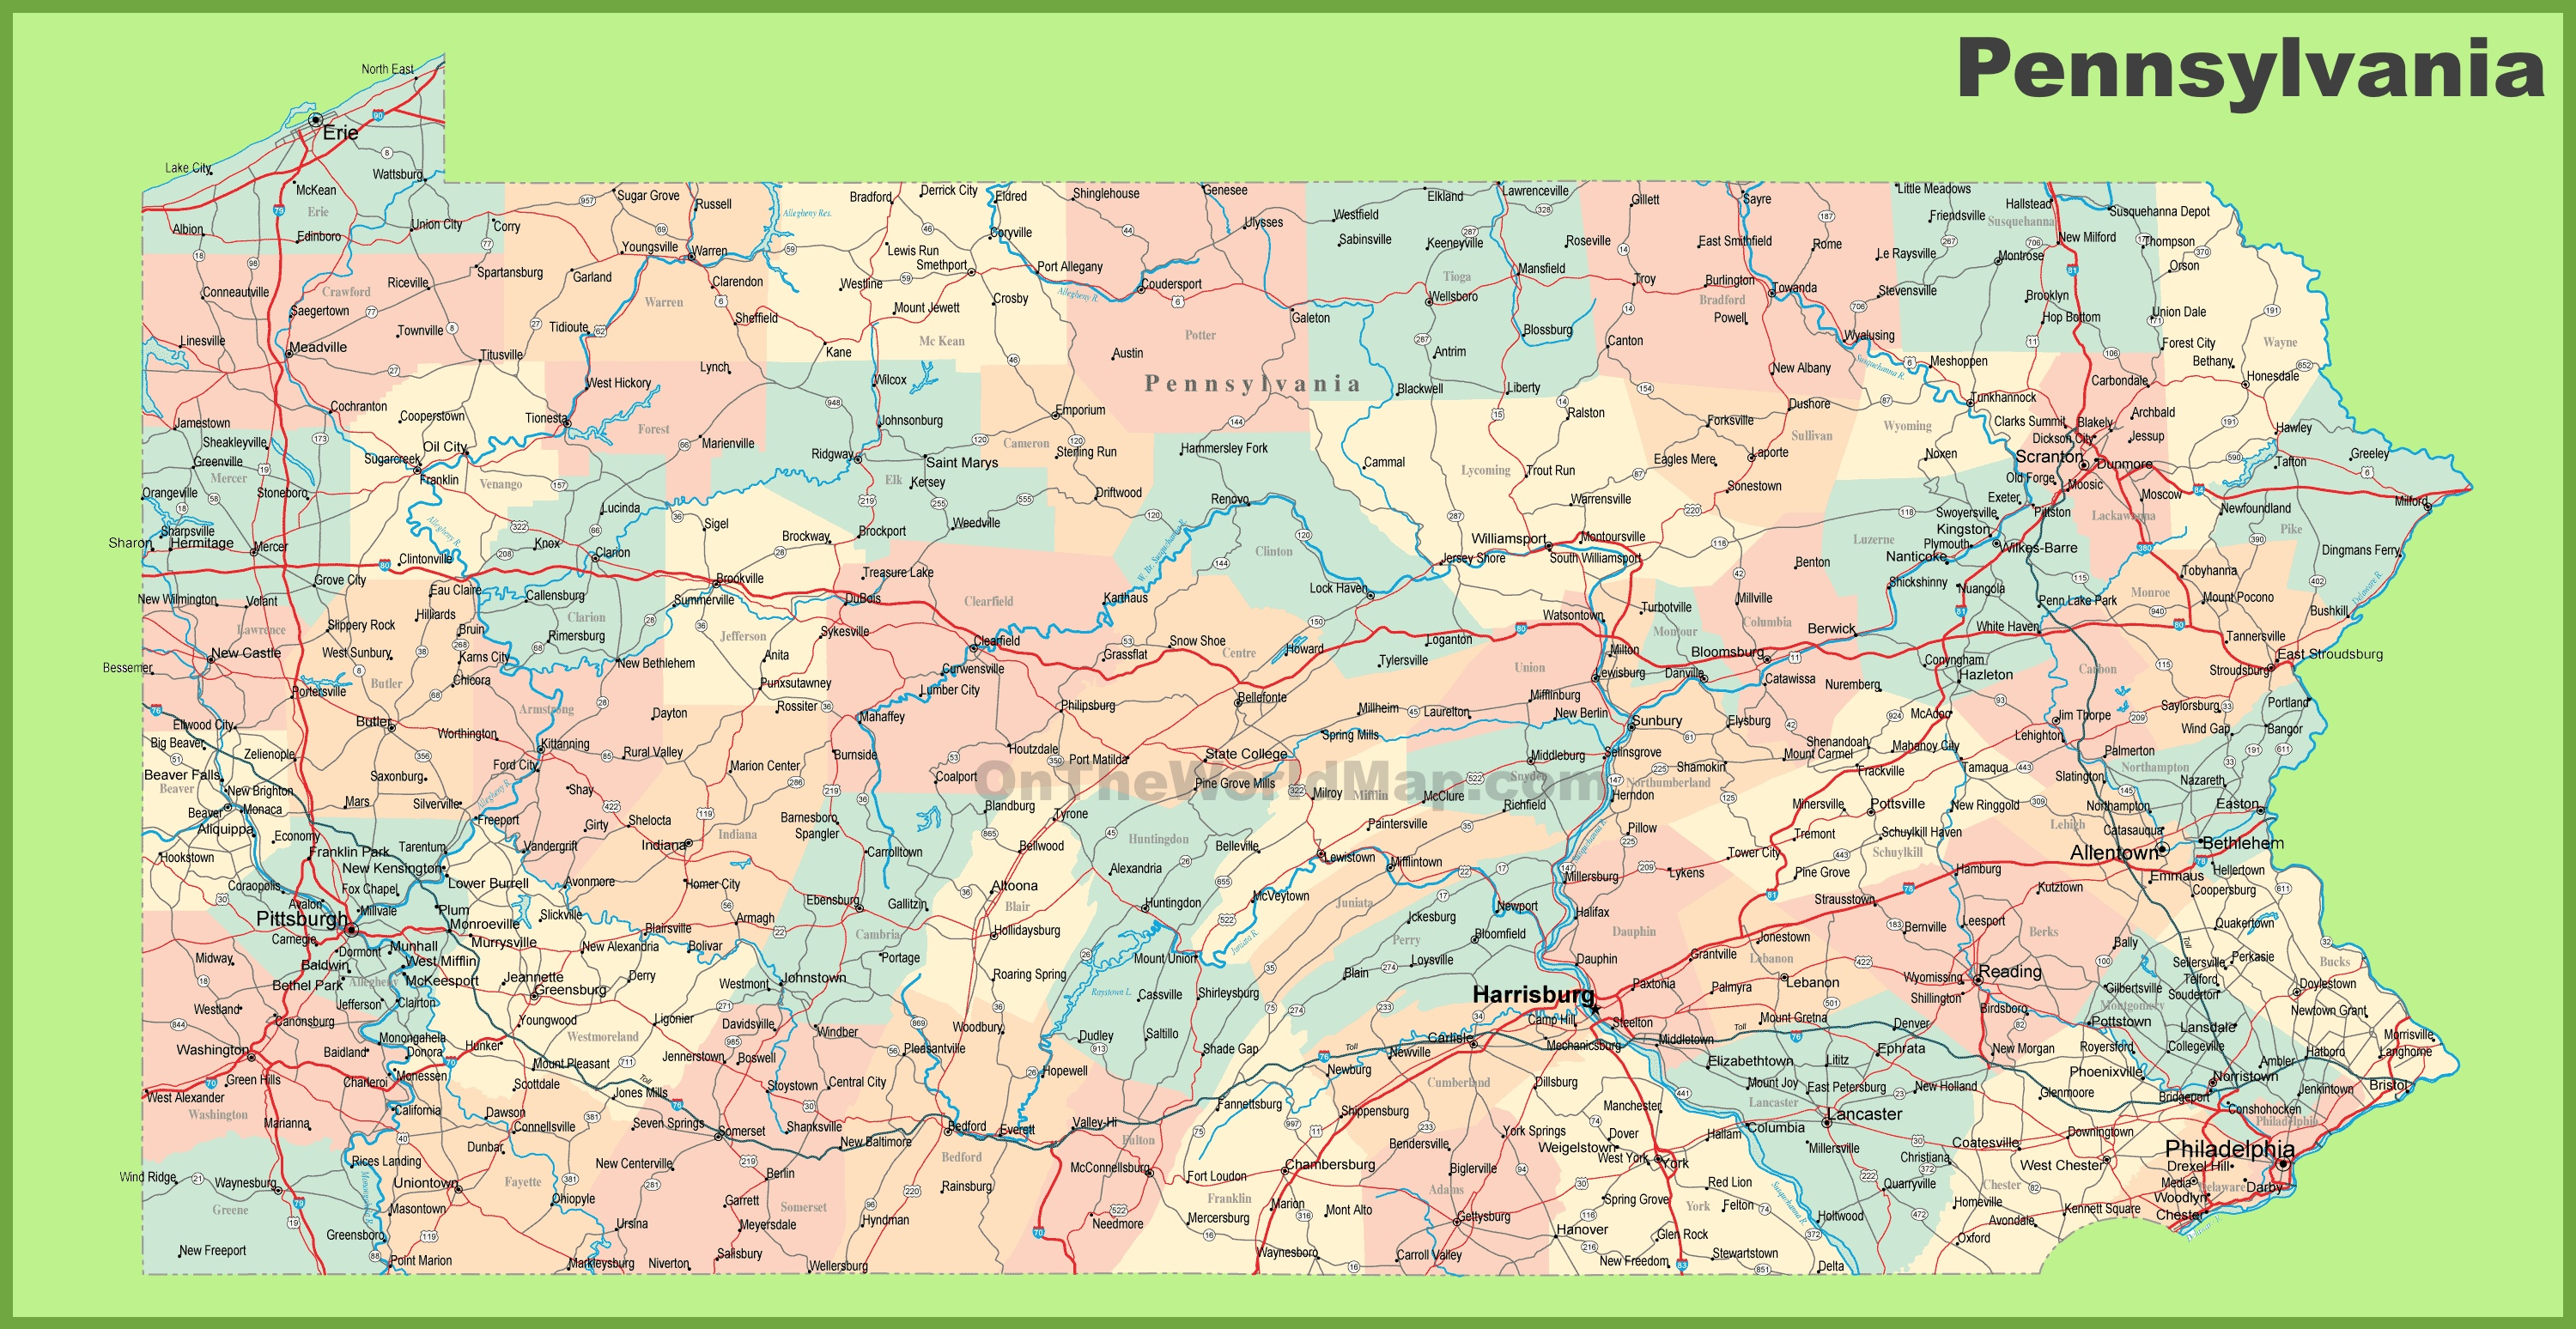 Pa State Map With Counties And Cities.Road Map Of Pennsylvania With Cities